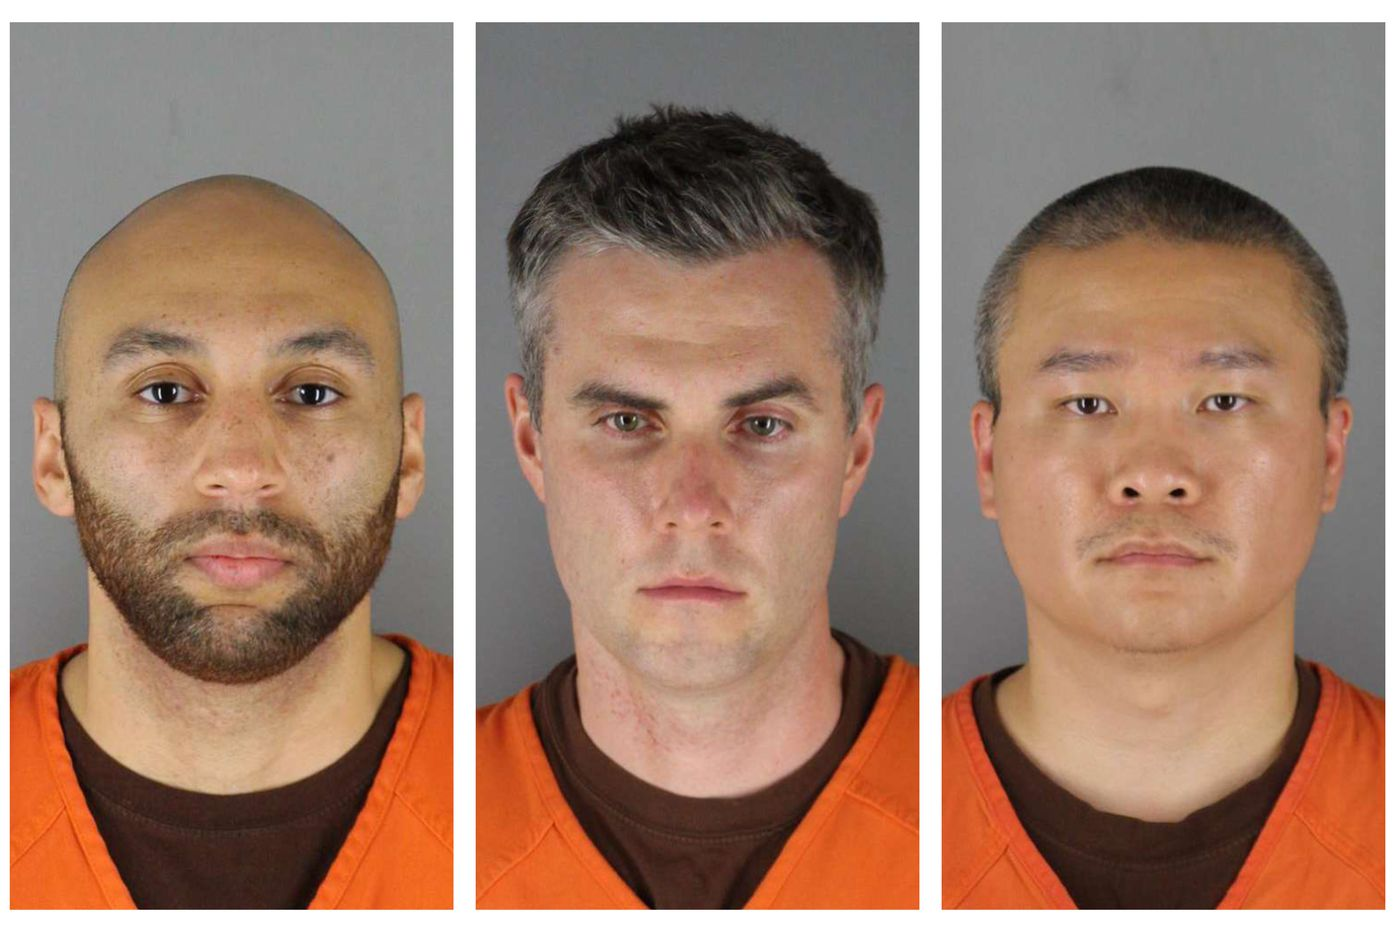 $750K bail set for 3 fired Minneapolis police officers accused in George Floyd's death; 2 were rookies